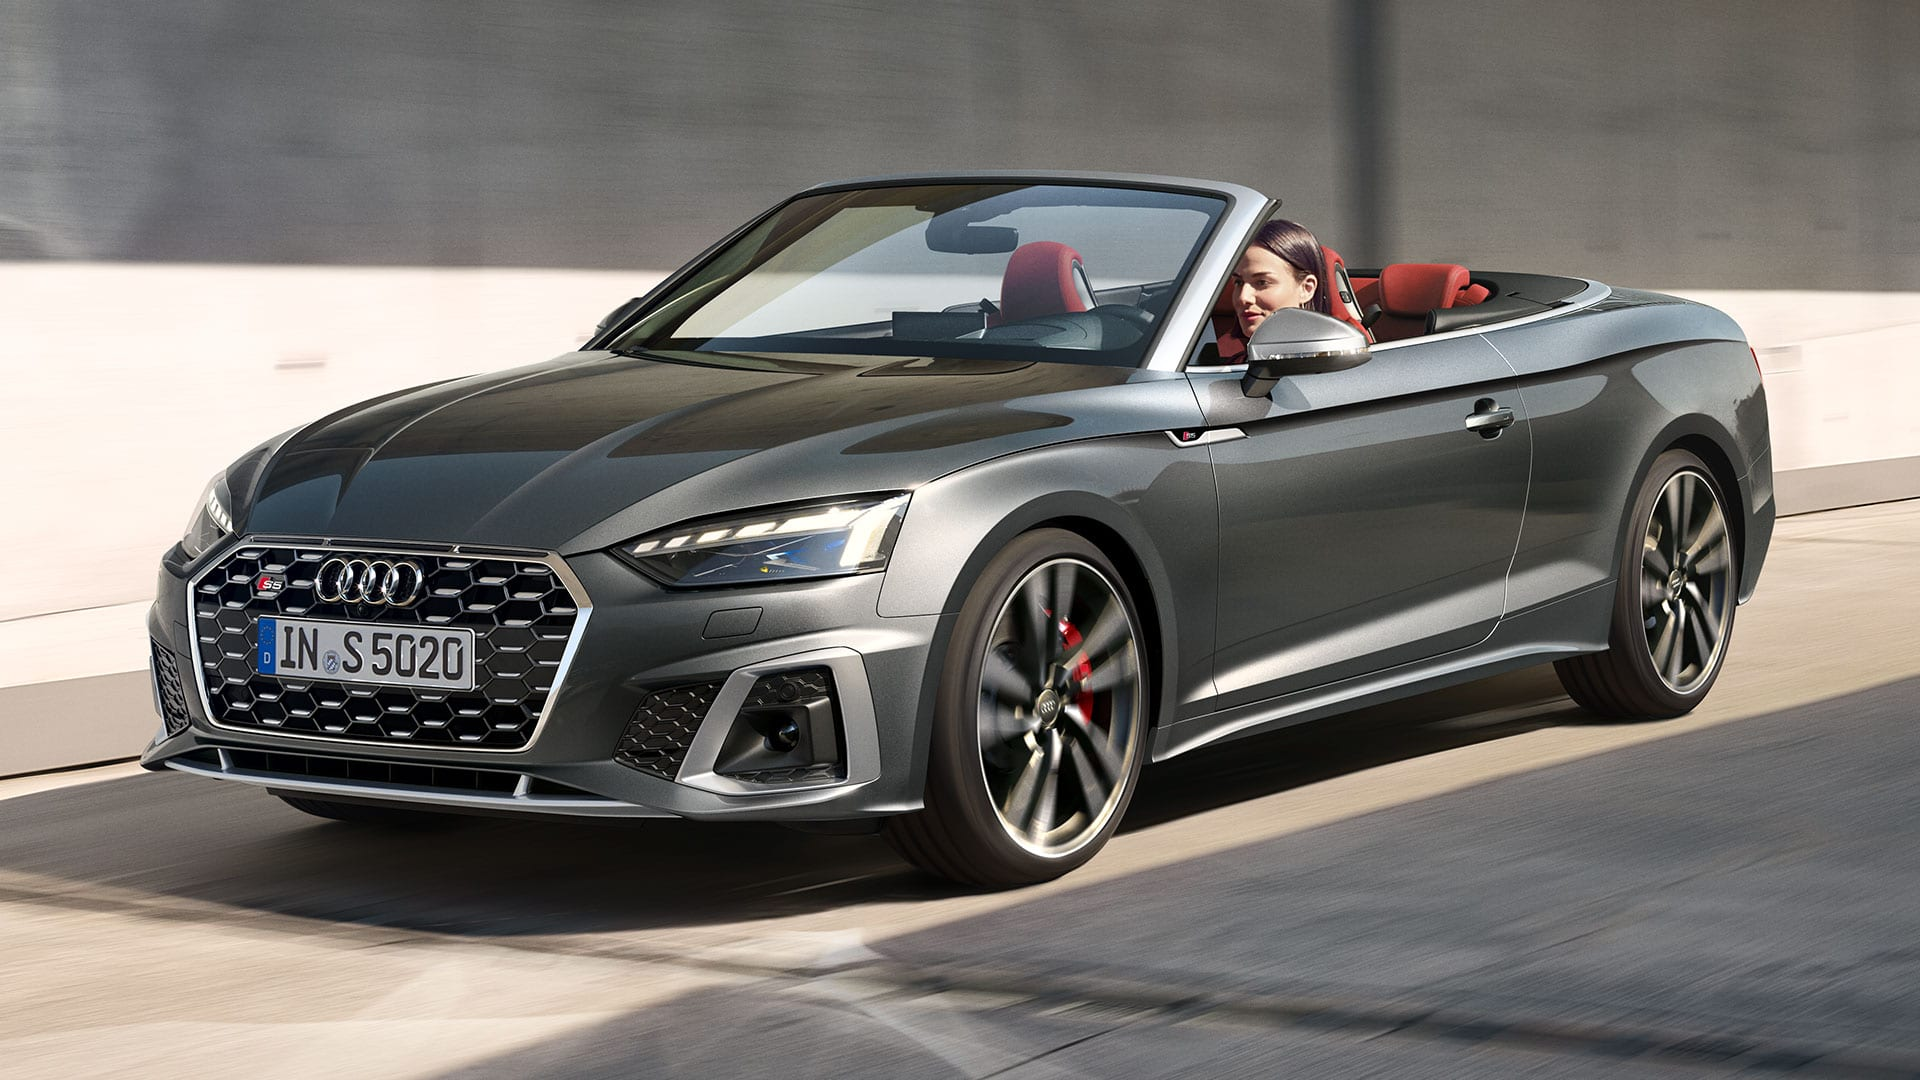 2021 Audi Rs5 Cabriolet Performance and New Engine